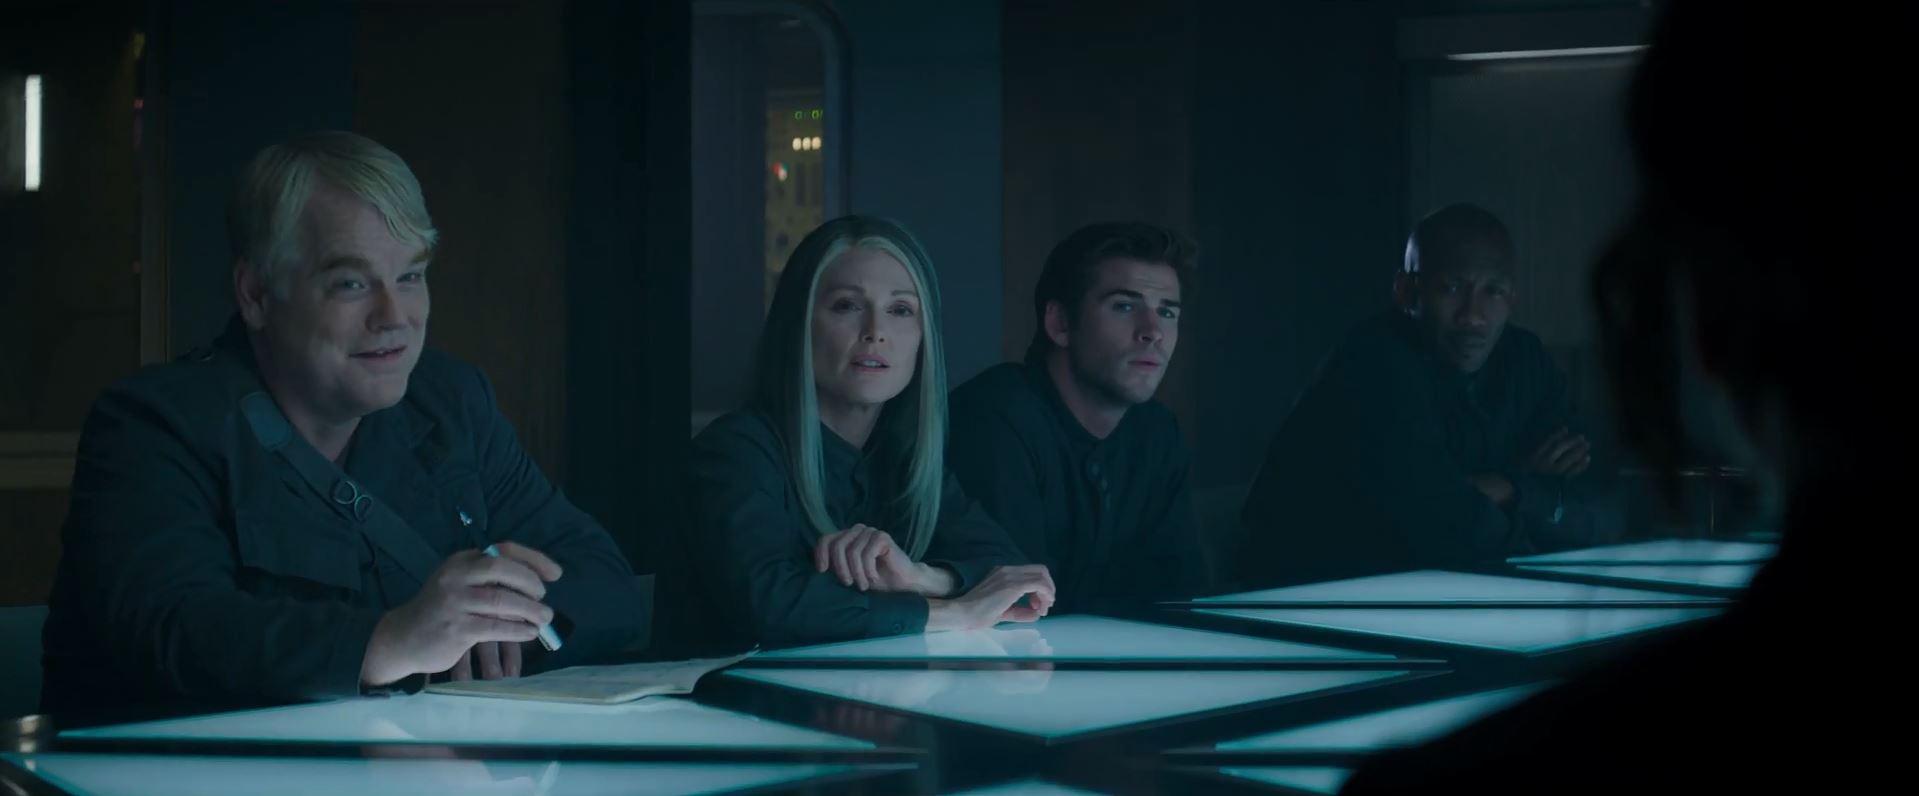 The Hunger Games Catching Fire Archives Scifiempire Net